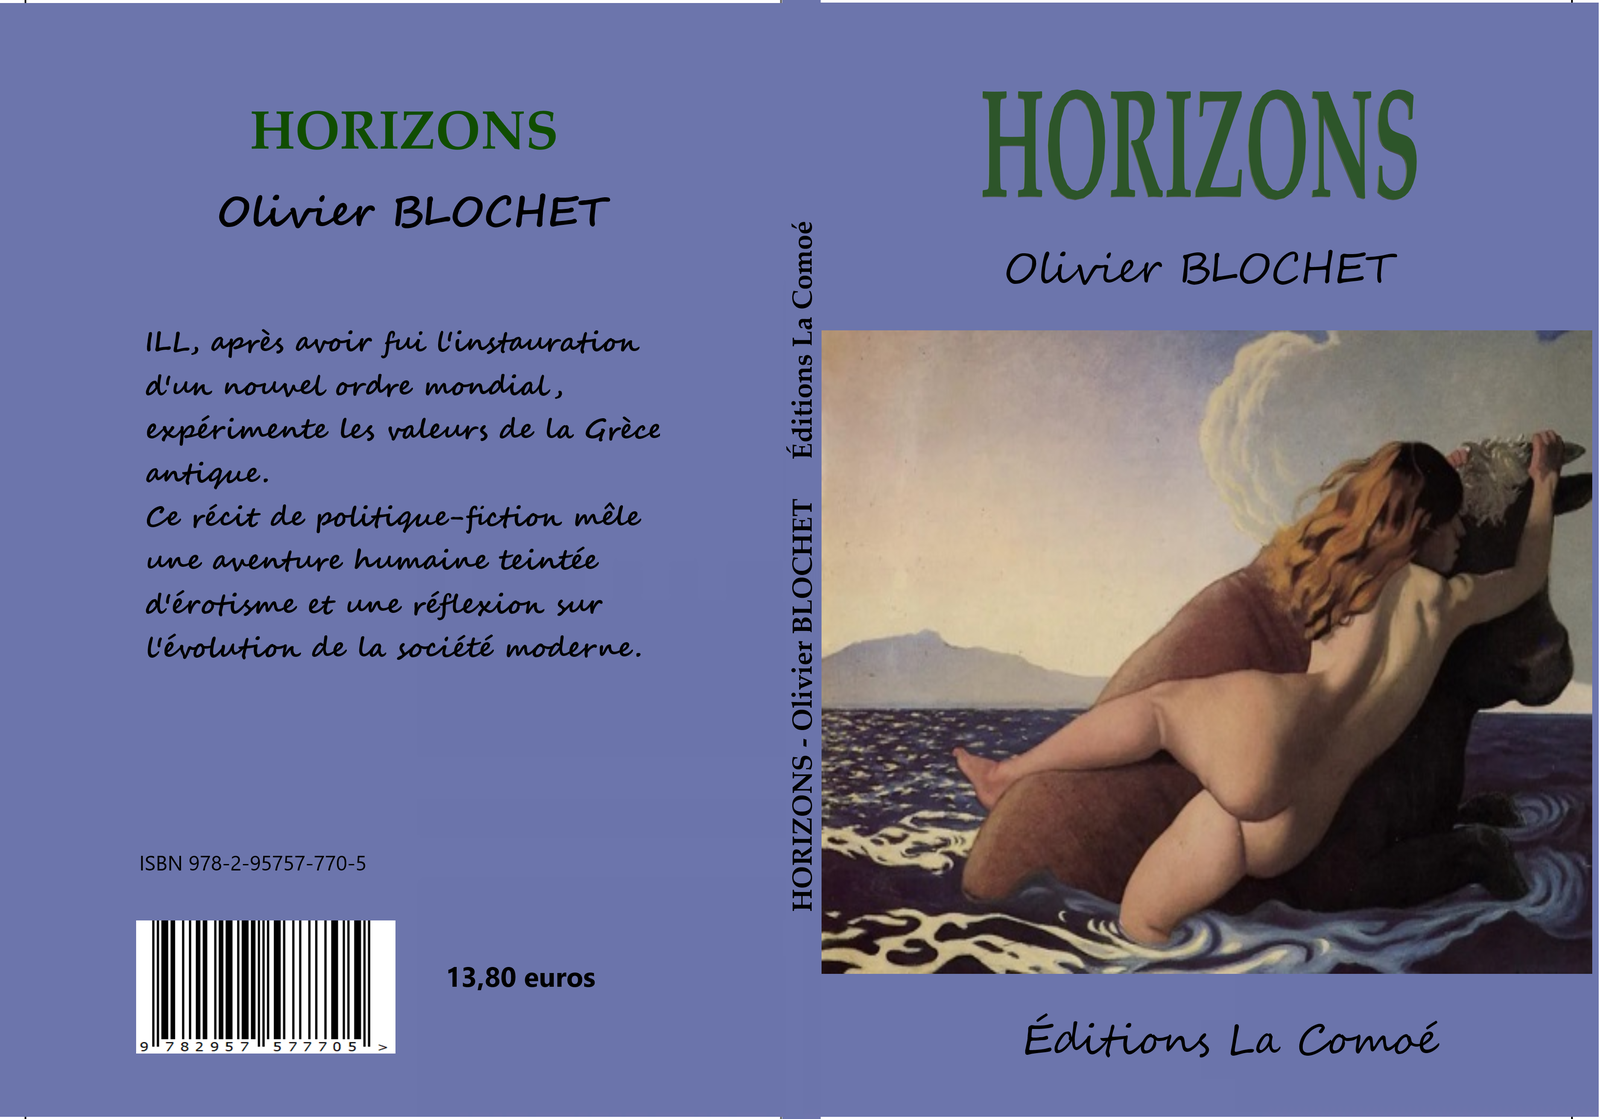 124 pages - 13,80 euros (2021)